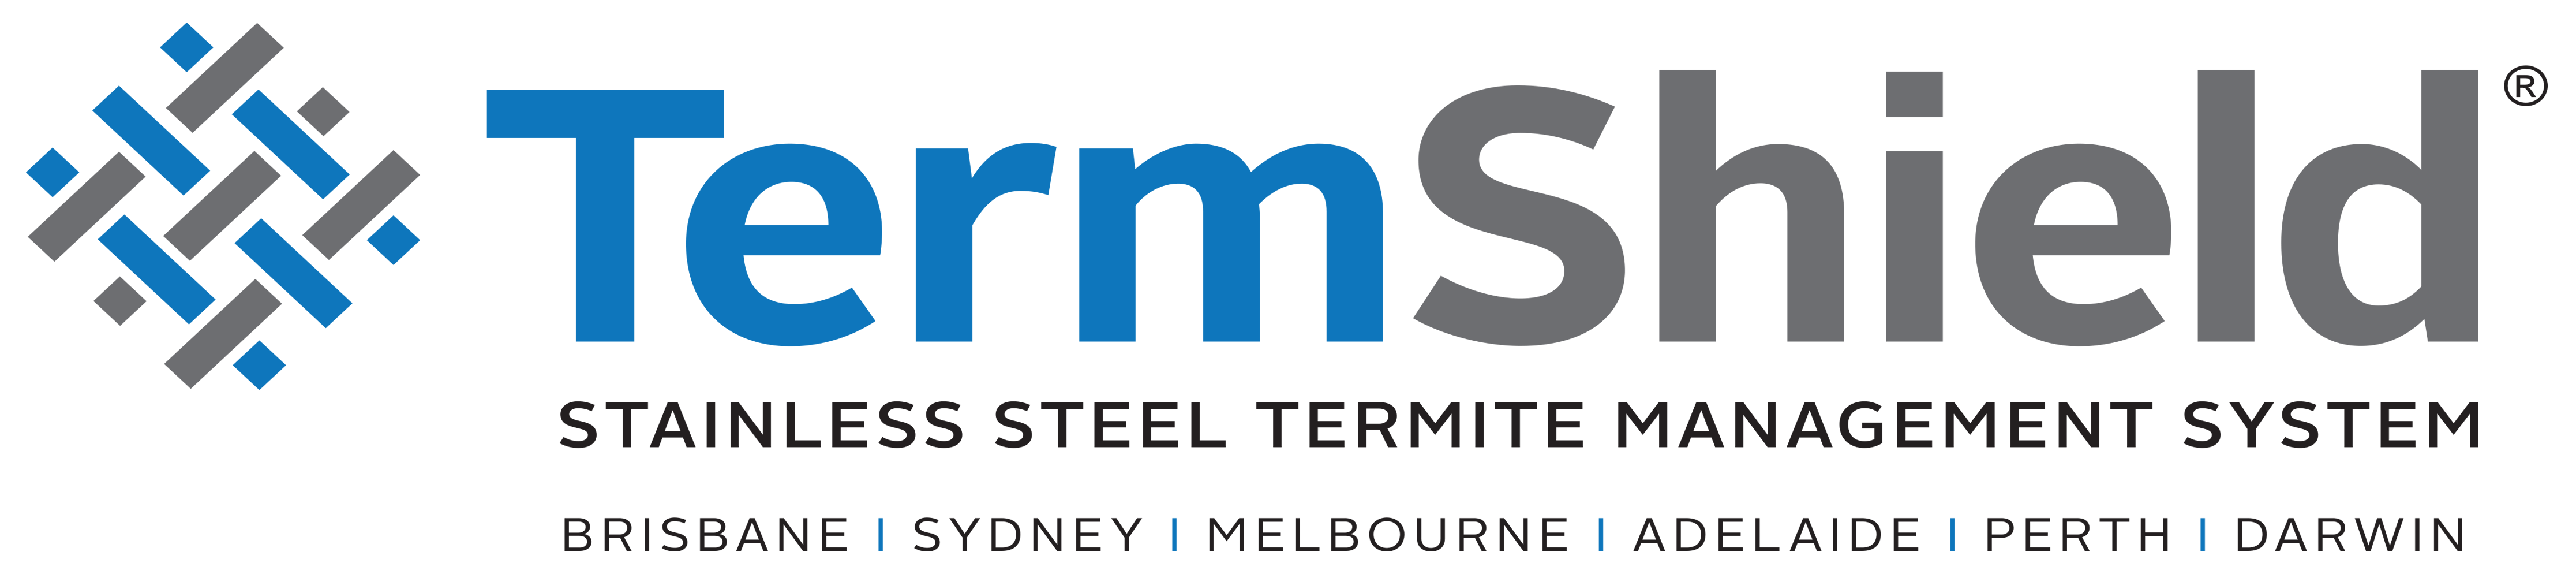 TermShield-Logo-2019-HR.png